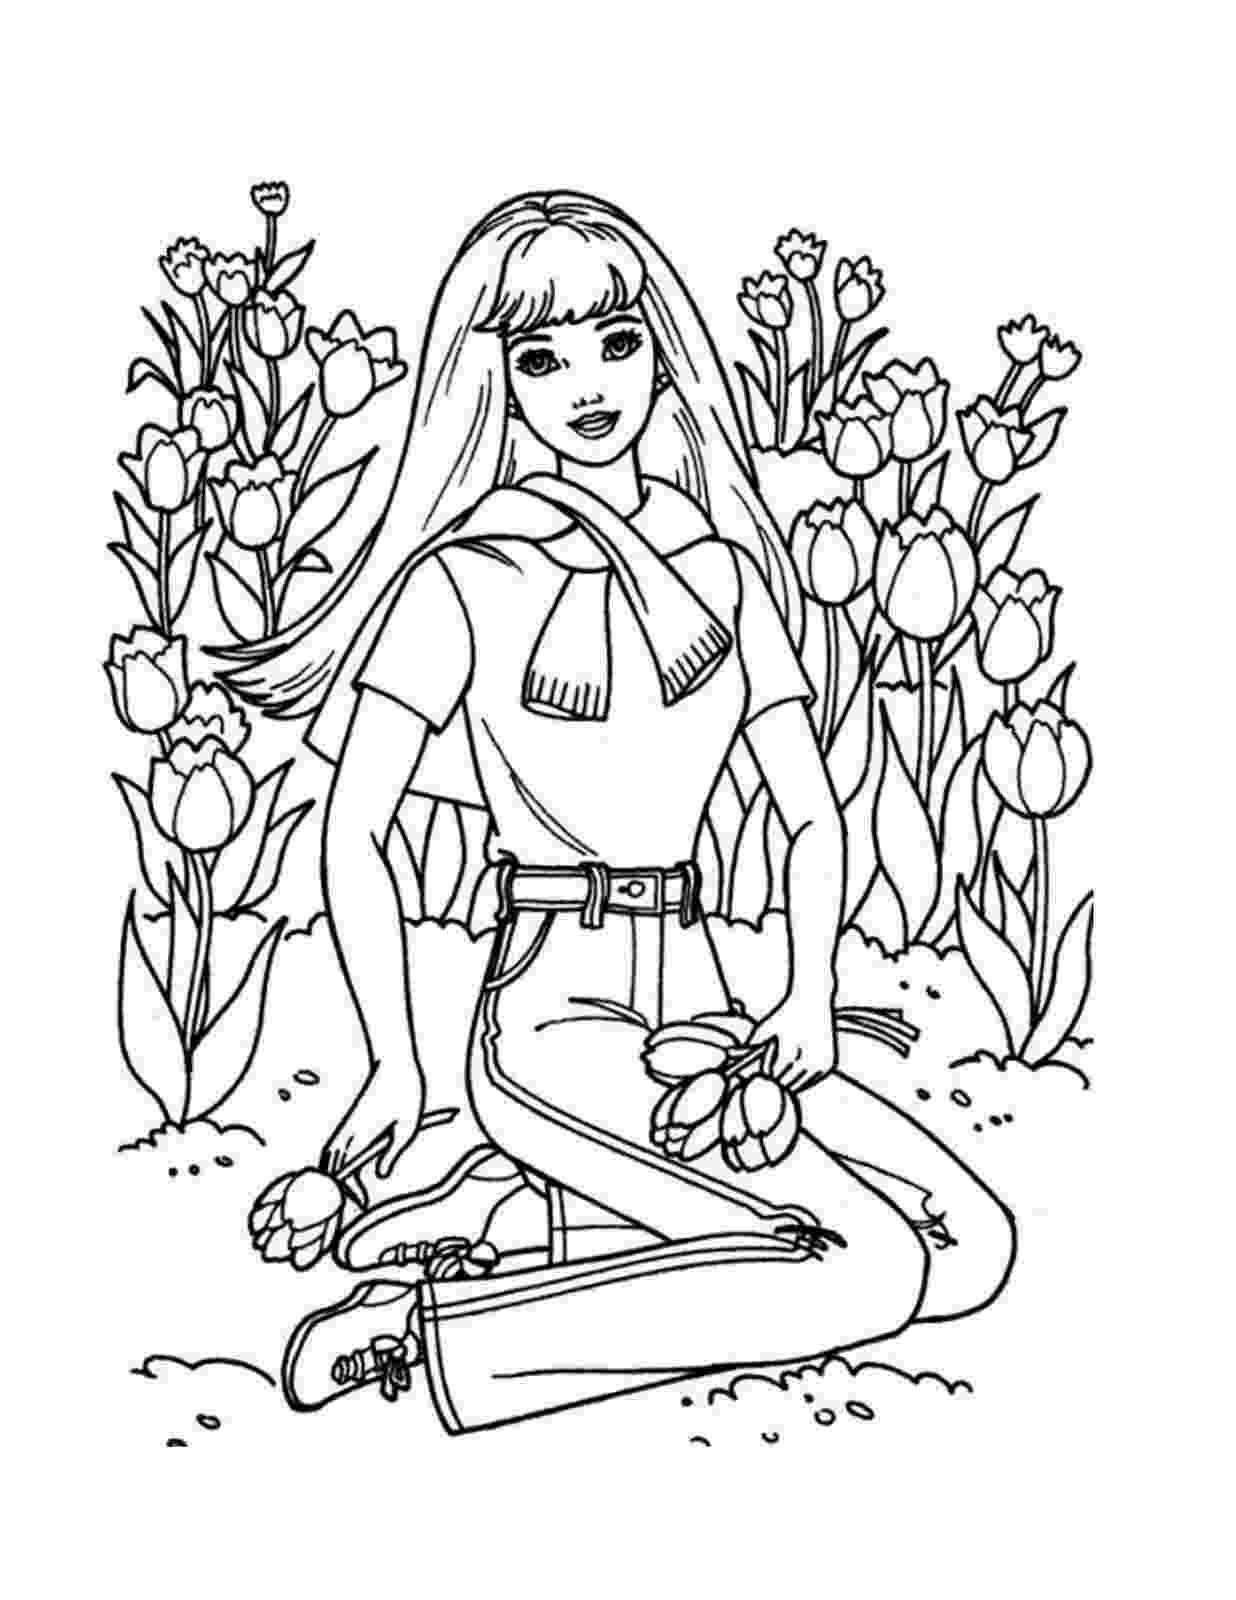 barbie printable colouring pages free coloring pages barbie coloring pages pages colouring printable barbie